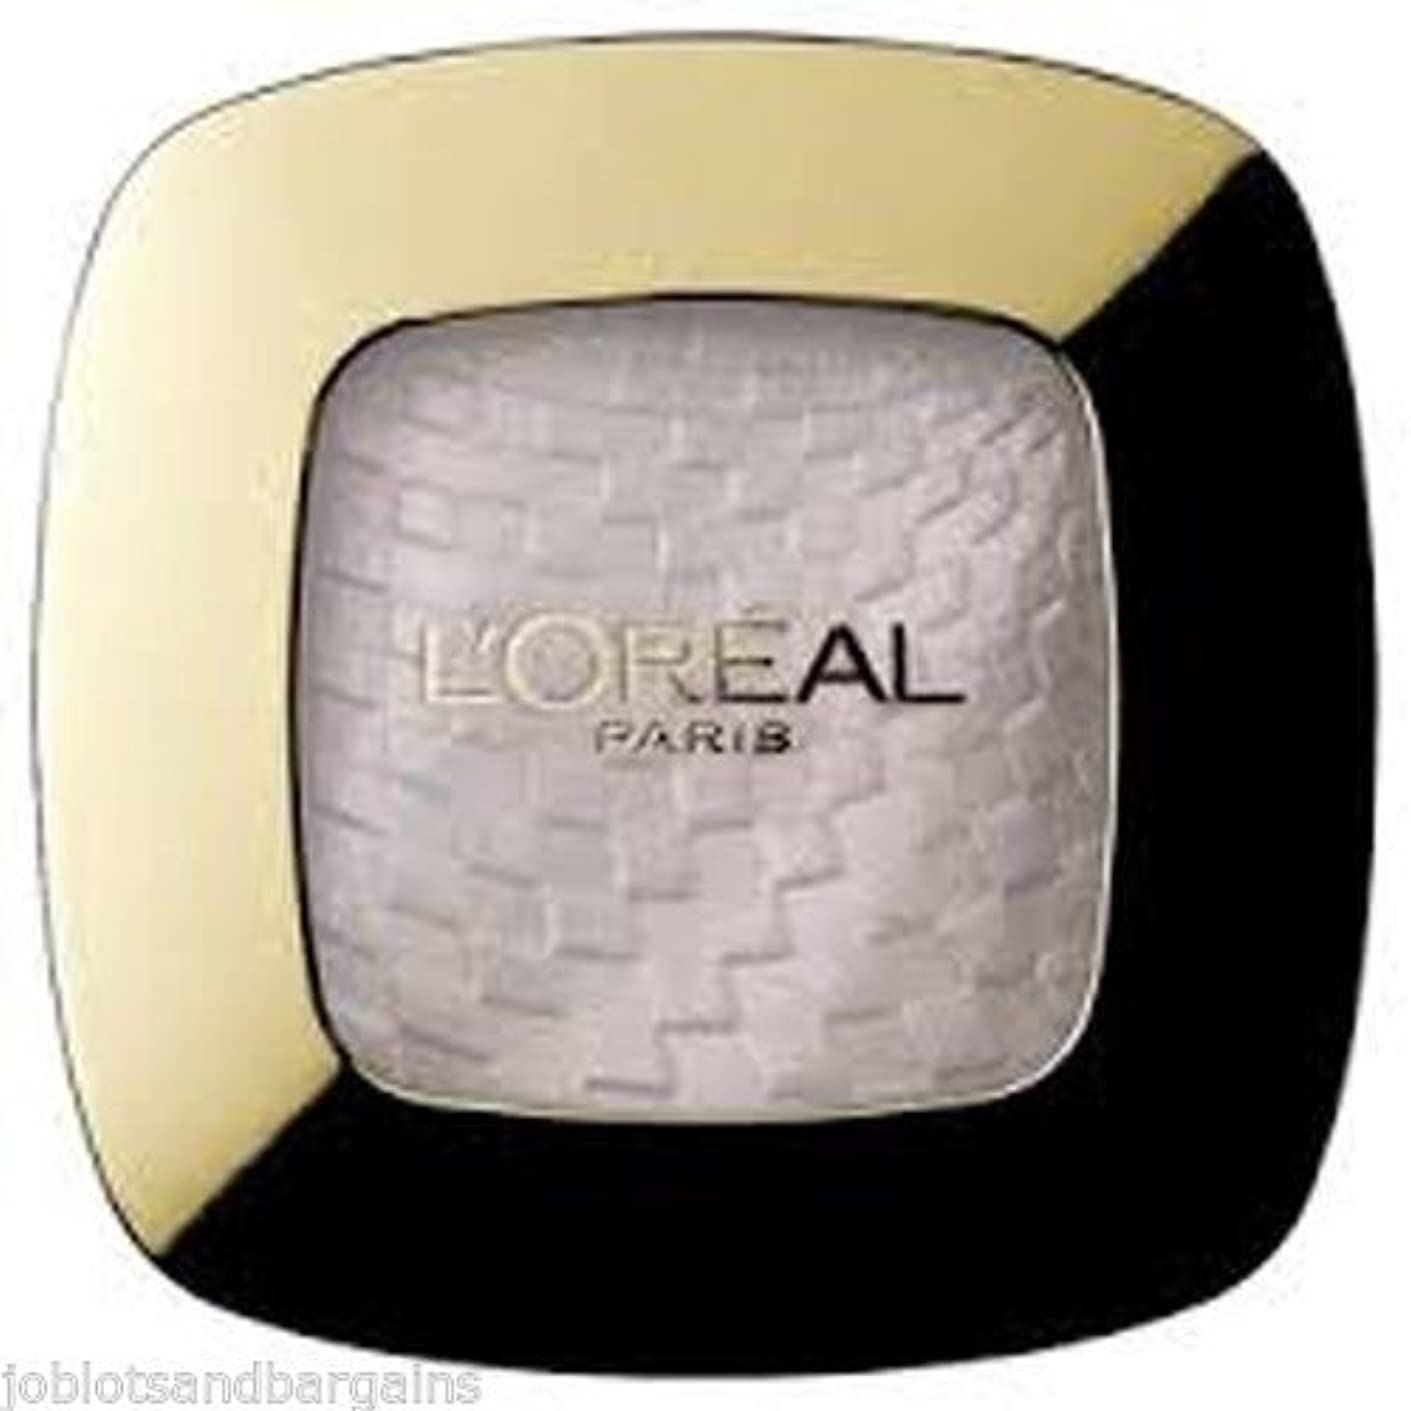 均等にズームインするハイライトLoreal Color Riche Cameleon Mono Eyeshadow Opalescent 600